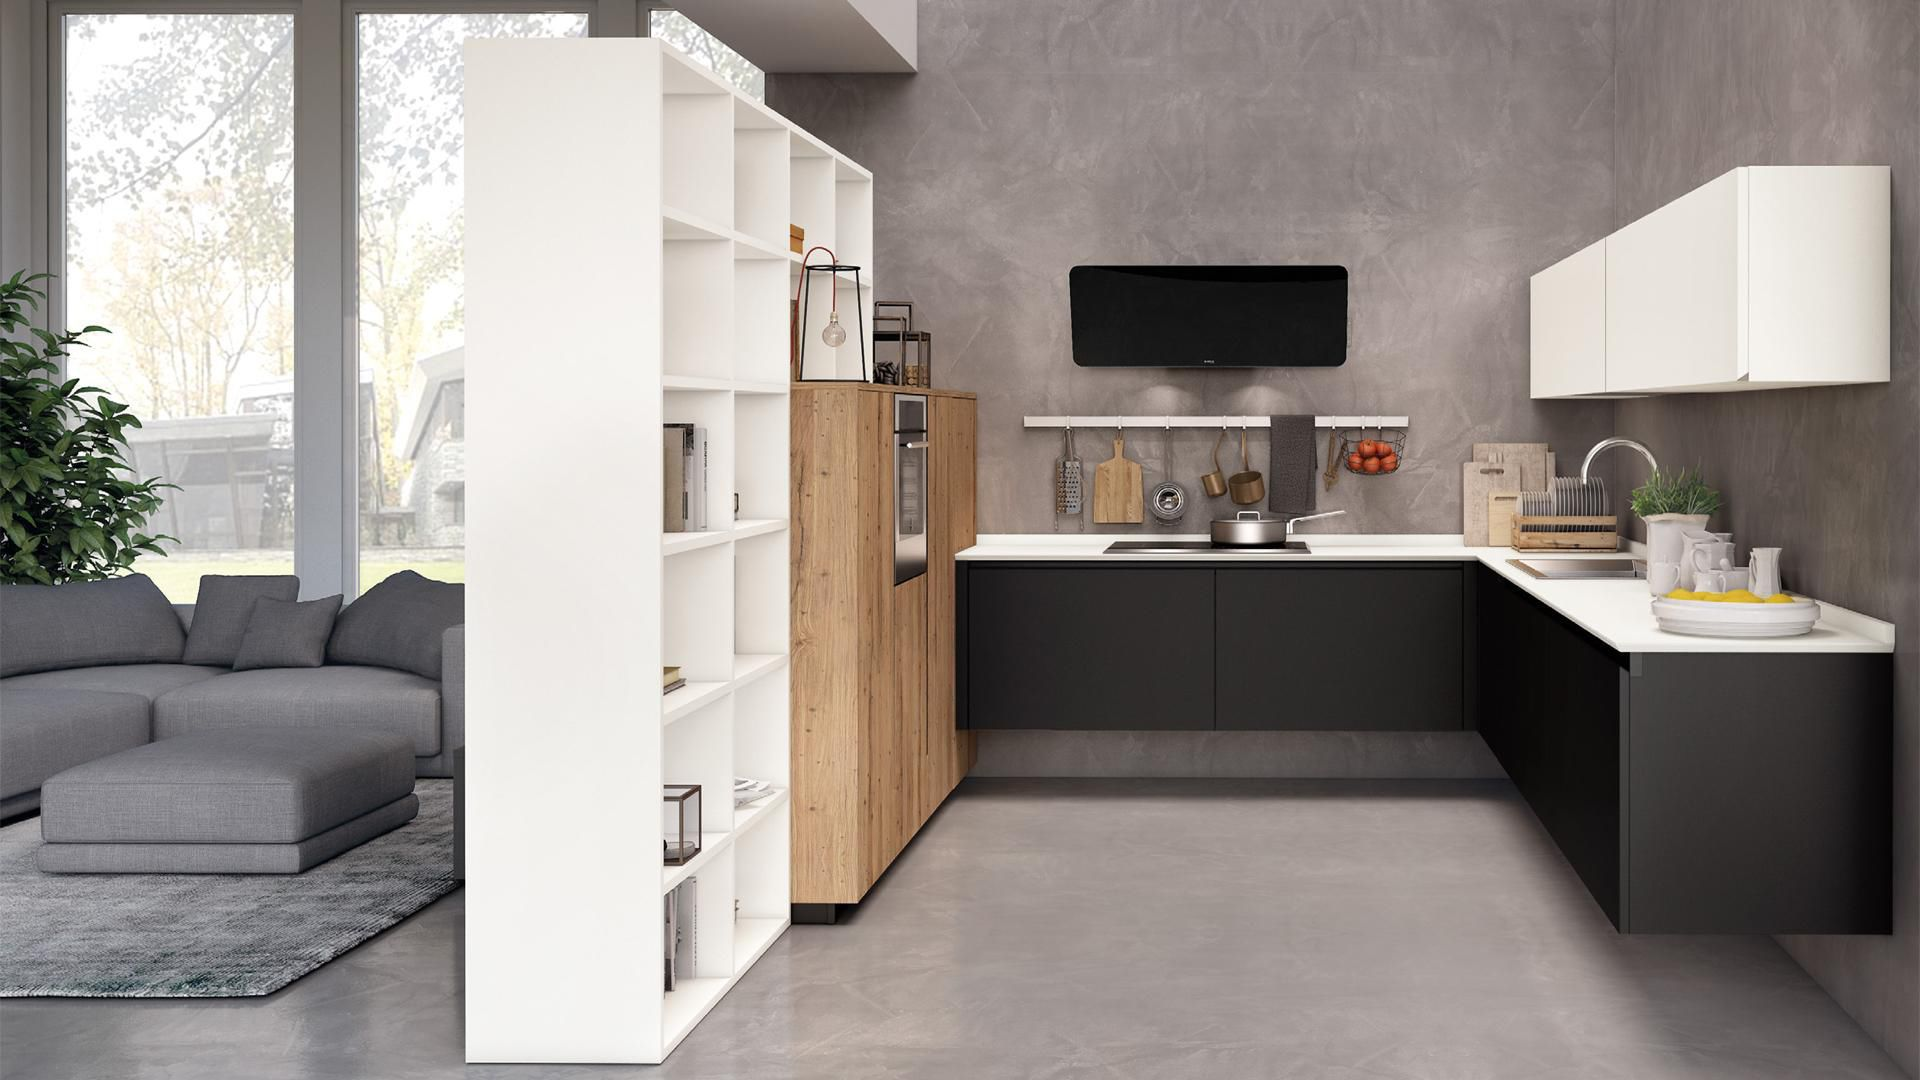 Cucina Oltre Lube.Contemporary Kitchen Wooden Aluminum Lacquered Oltre Cucine Lube